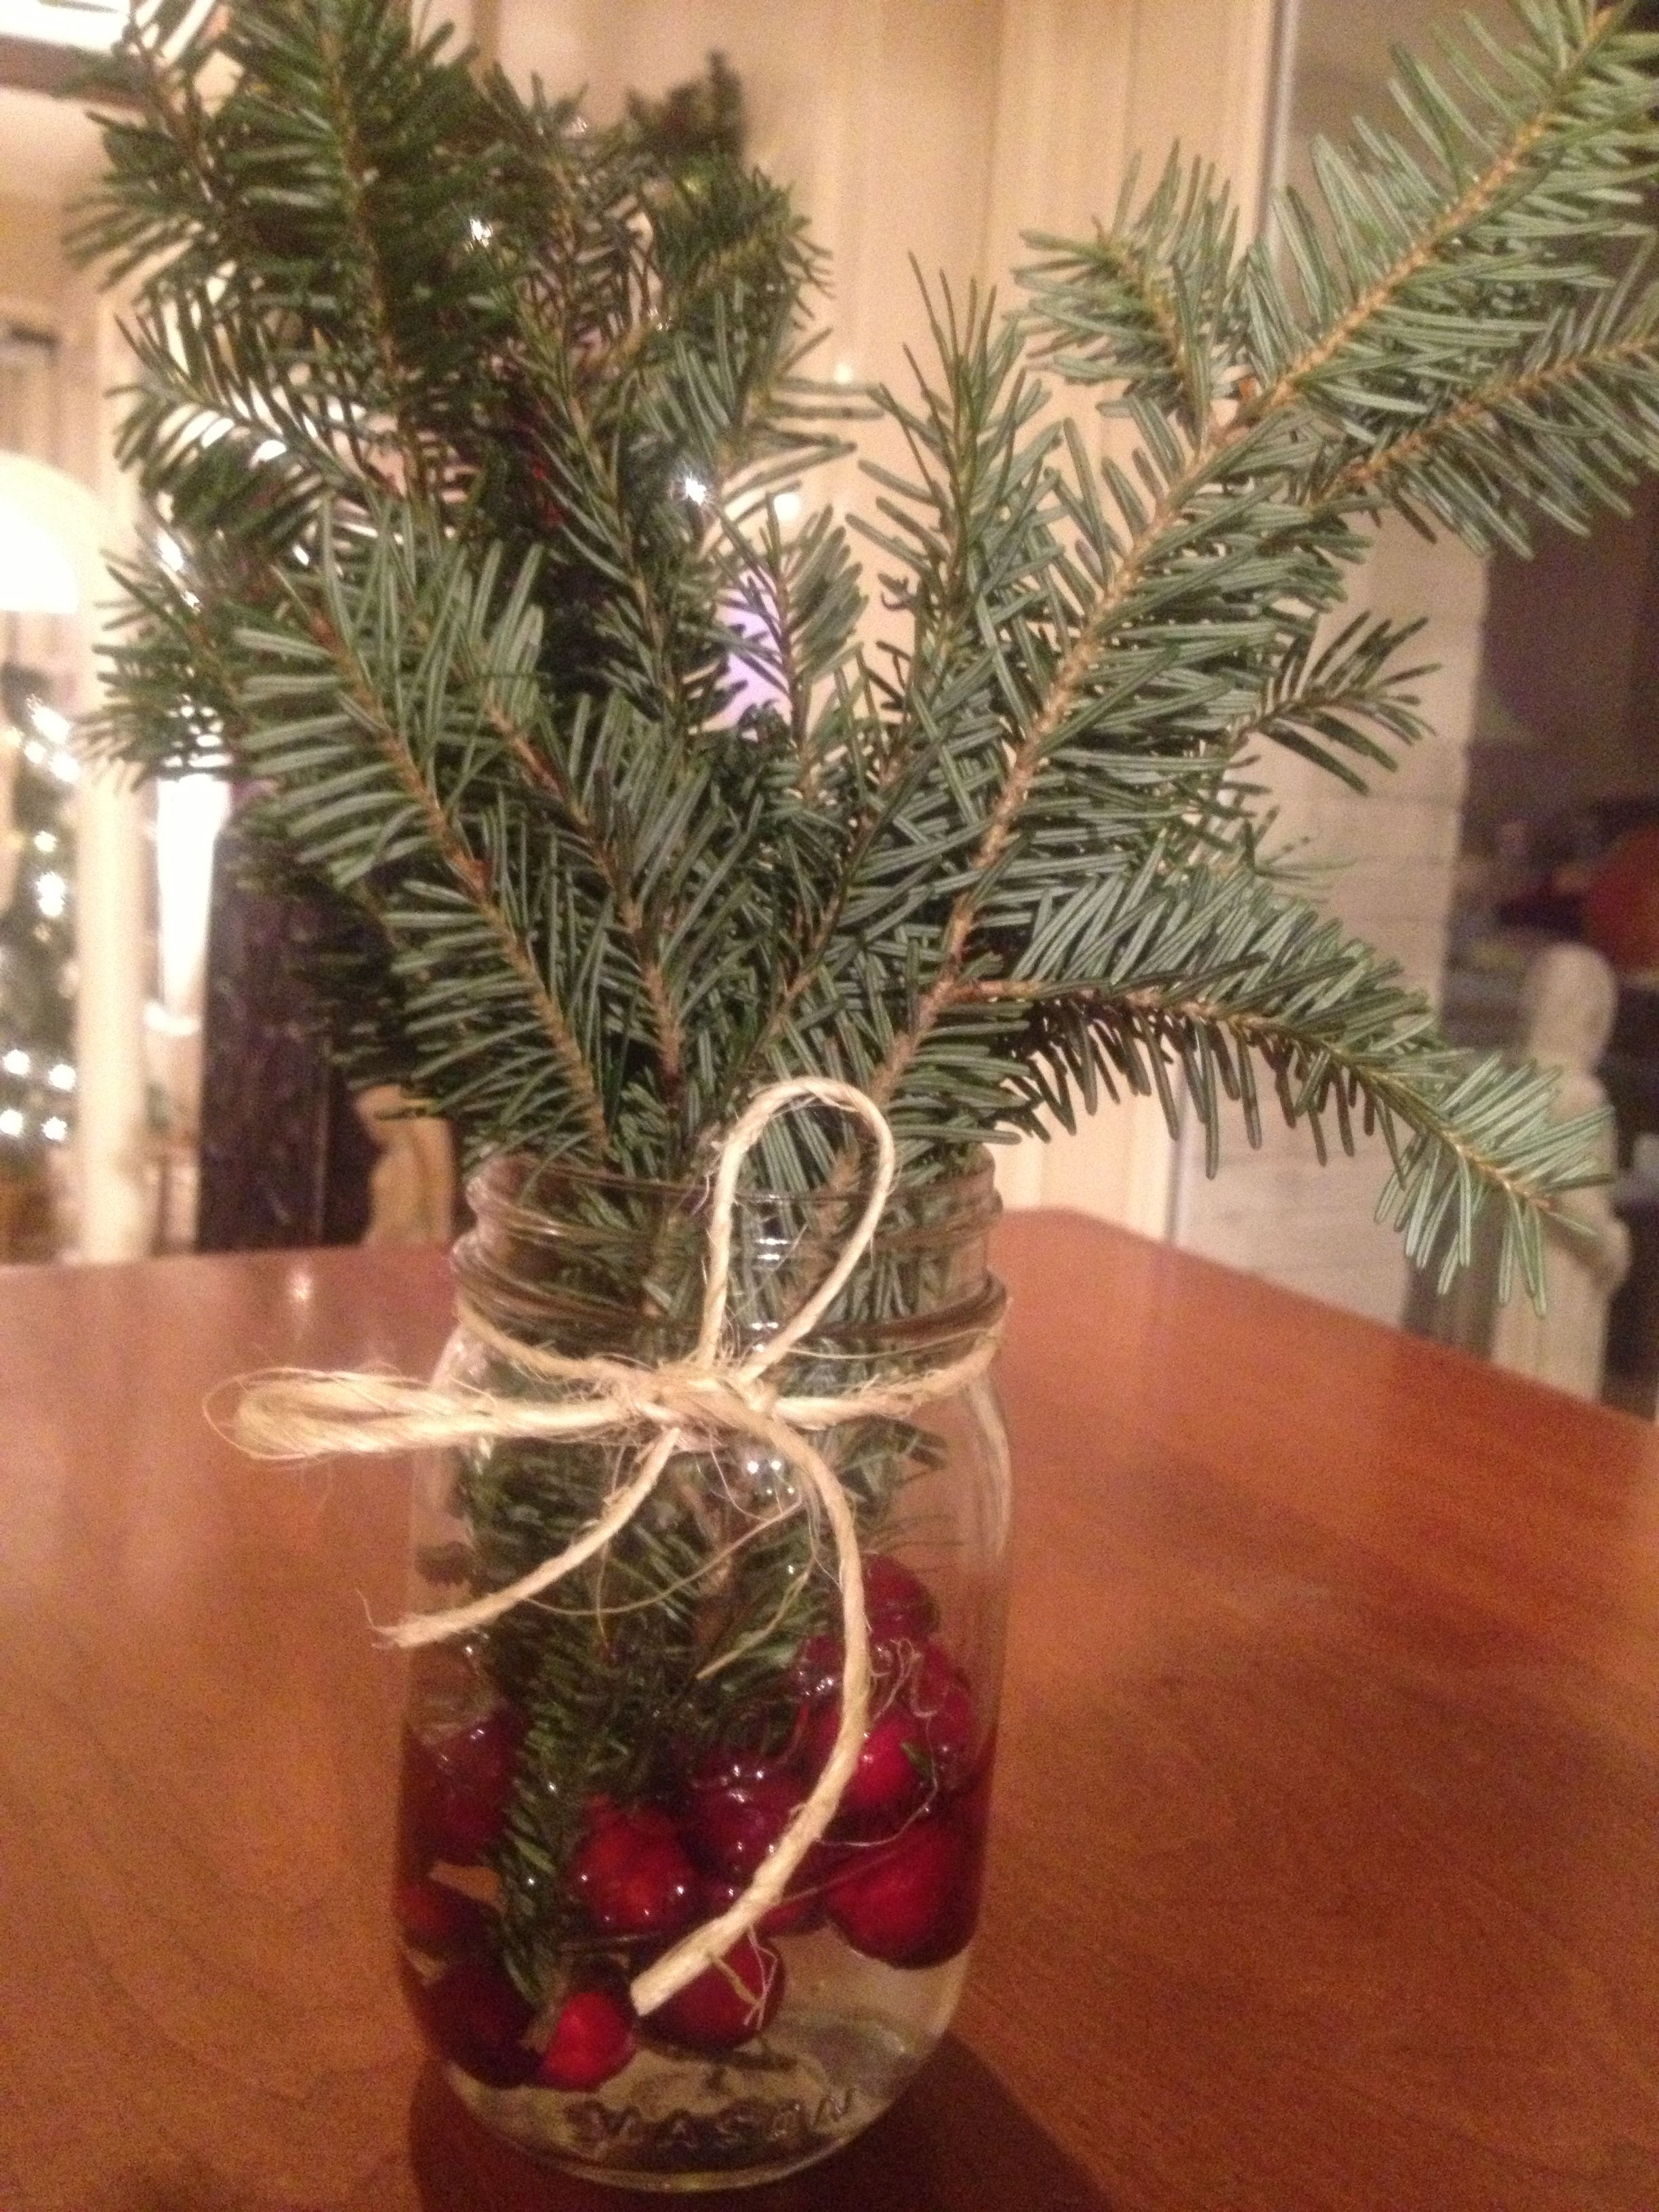 Mason Jar With Cranberries Twine And Christmas Tree Branches Smells Great Christmas Mason Jars Christmas Tree Branches Mason Jars